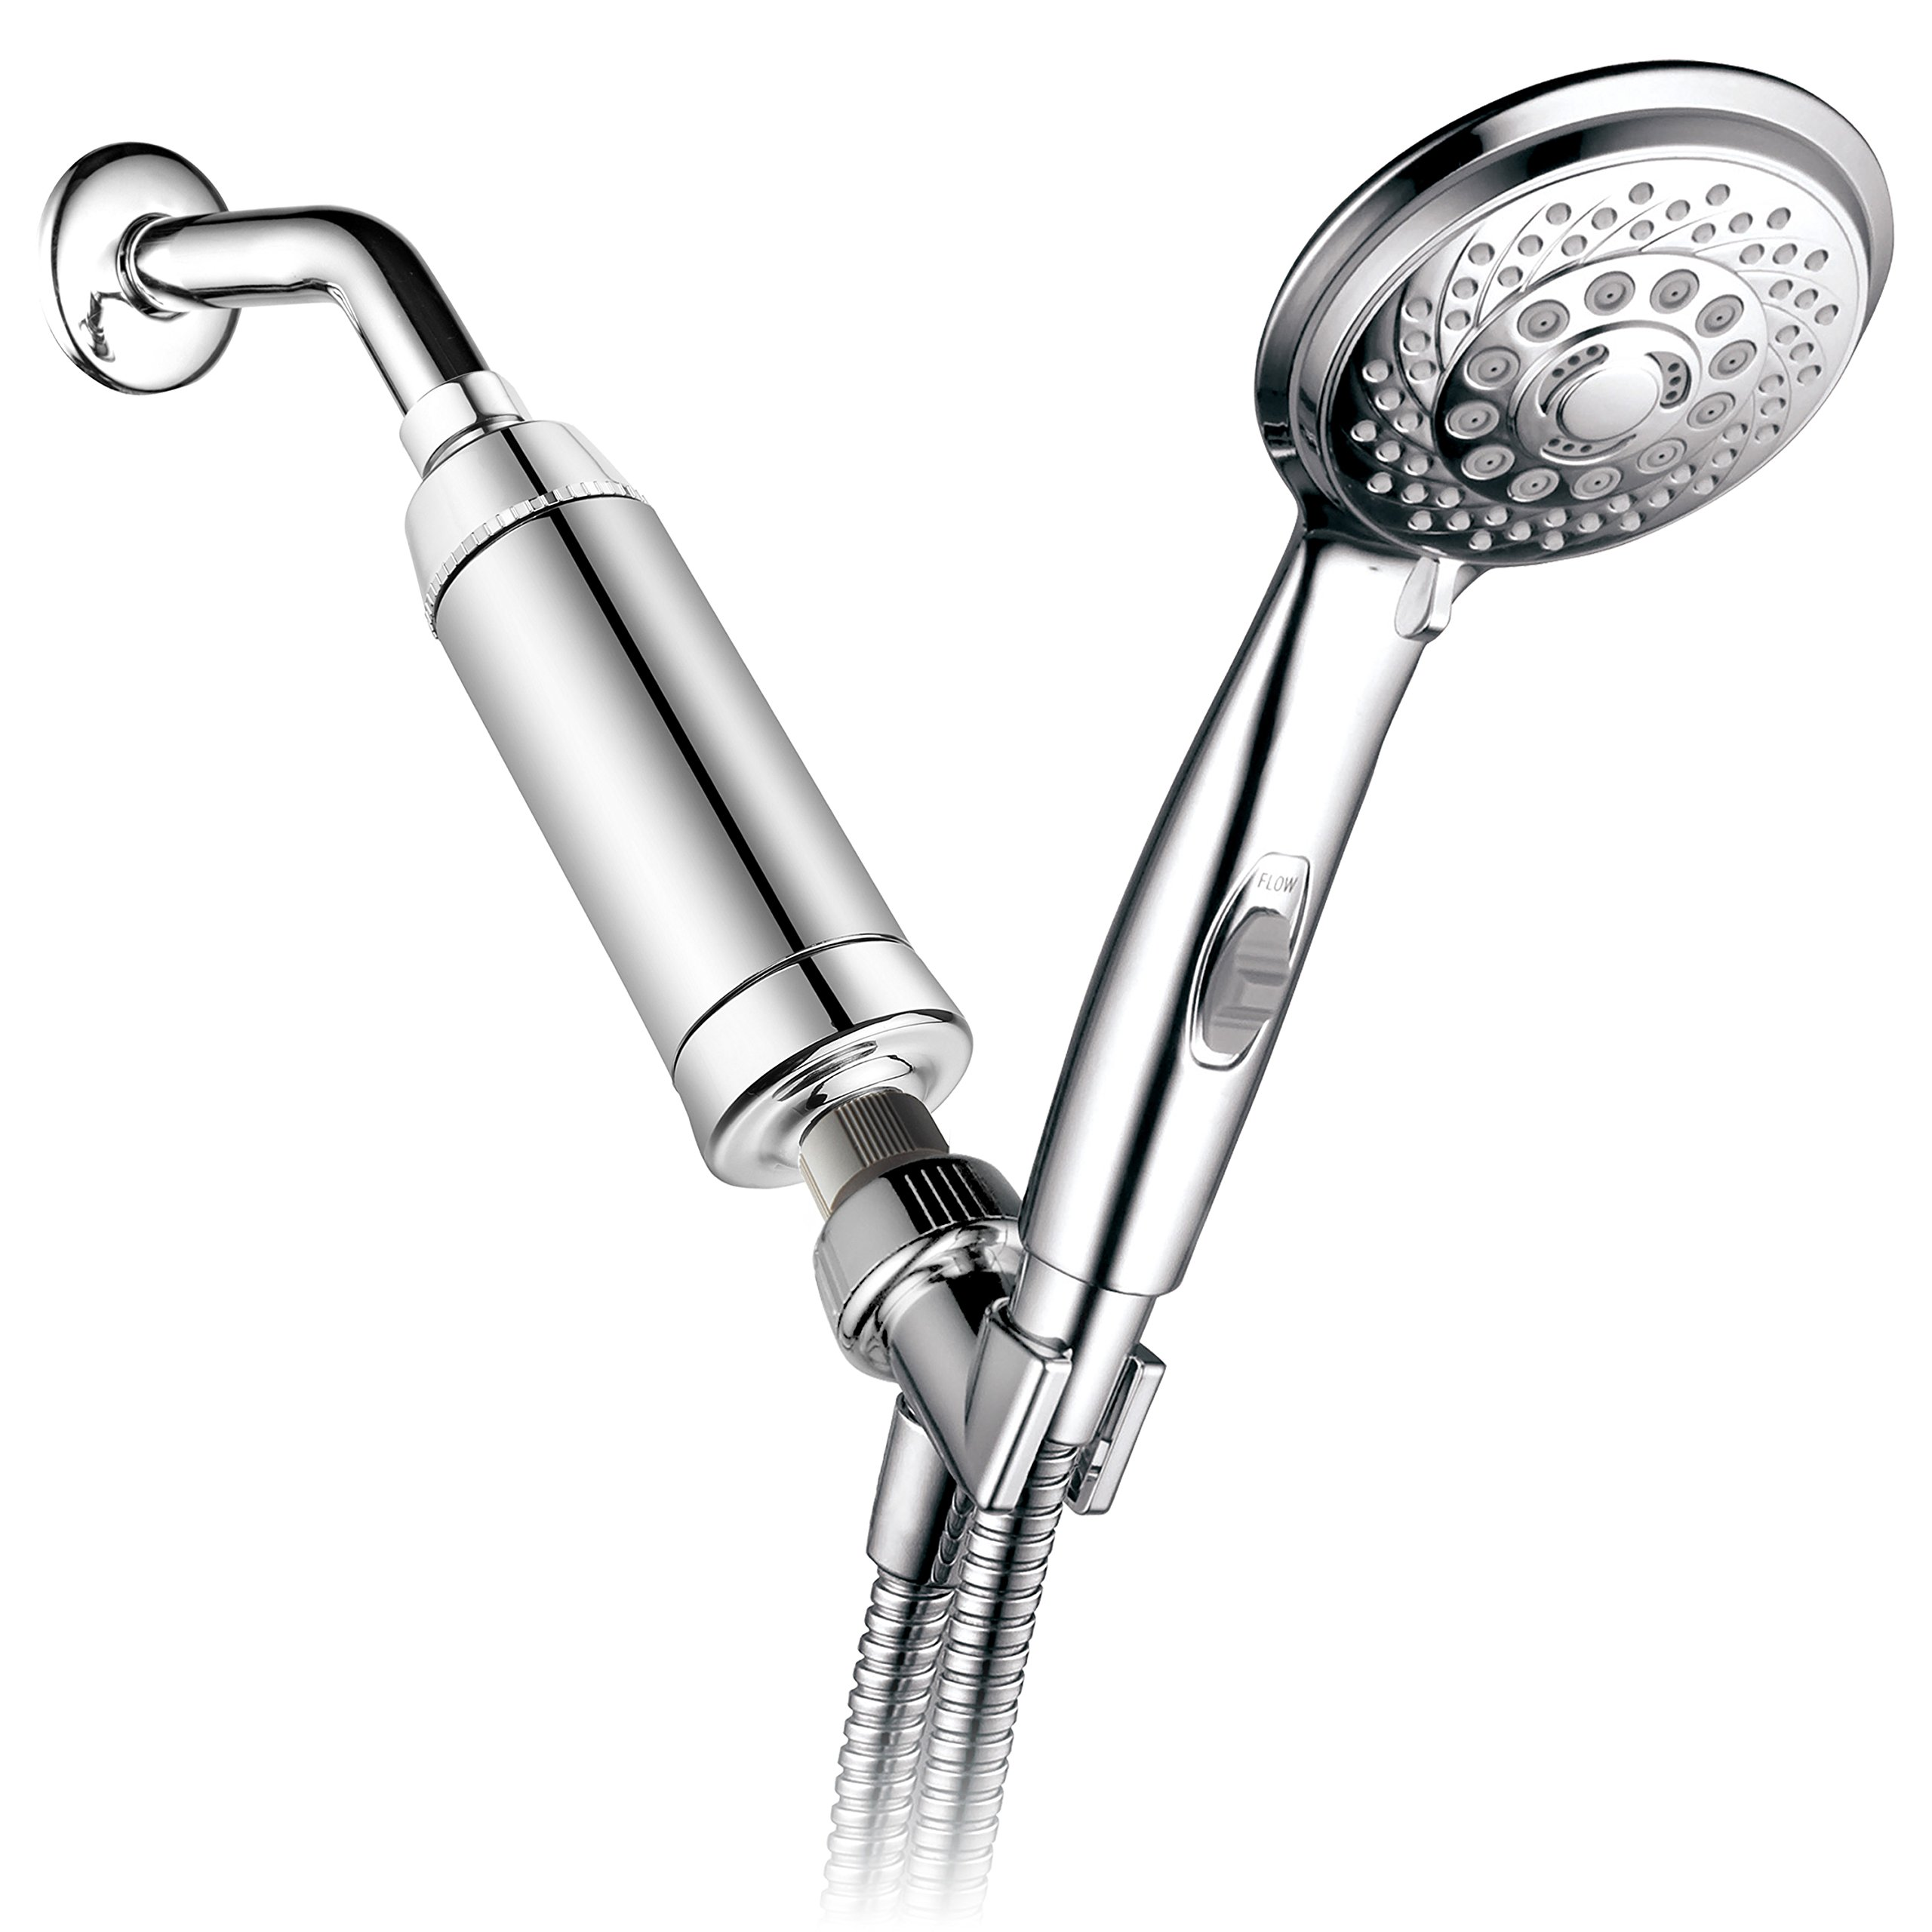 HotelSpa 7-Setting Handheld Shower with Patented ON/OFF Pause Switch and Universal High Performance 2 Stage KDF/CAG Shower Filter with Disposable Cartridge (Premium Chrome Finish)